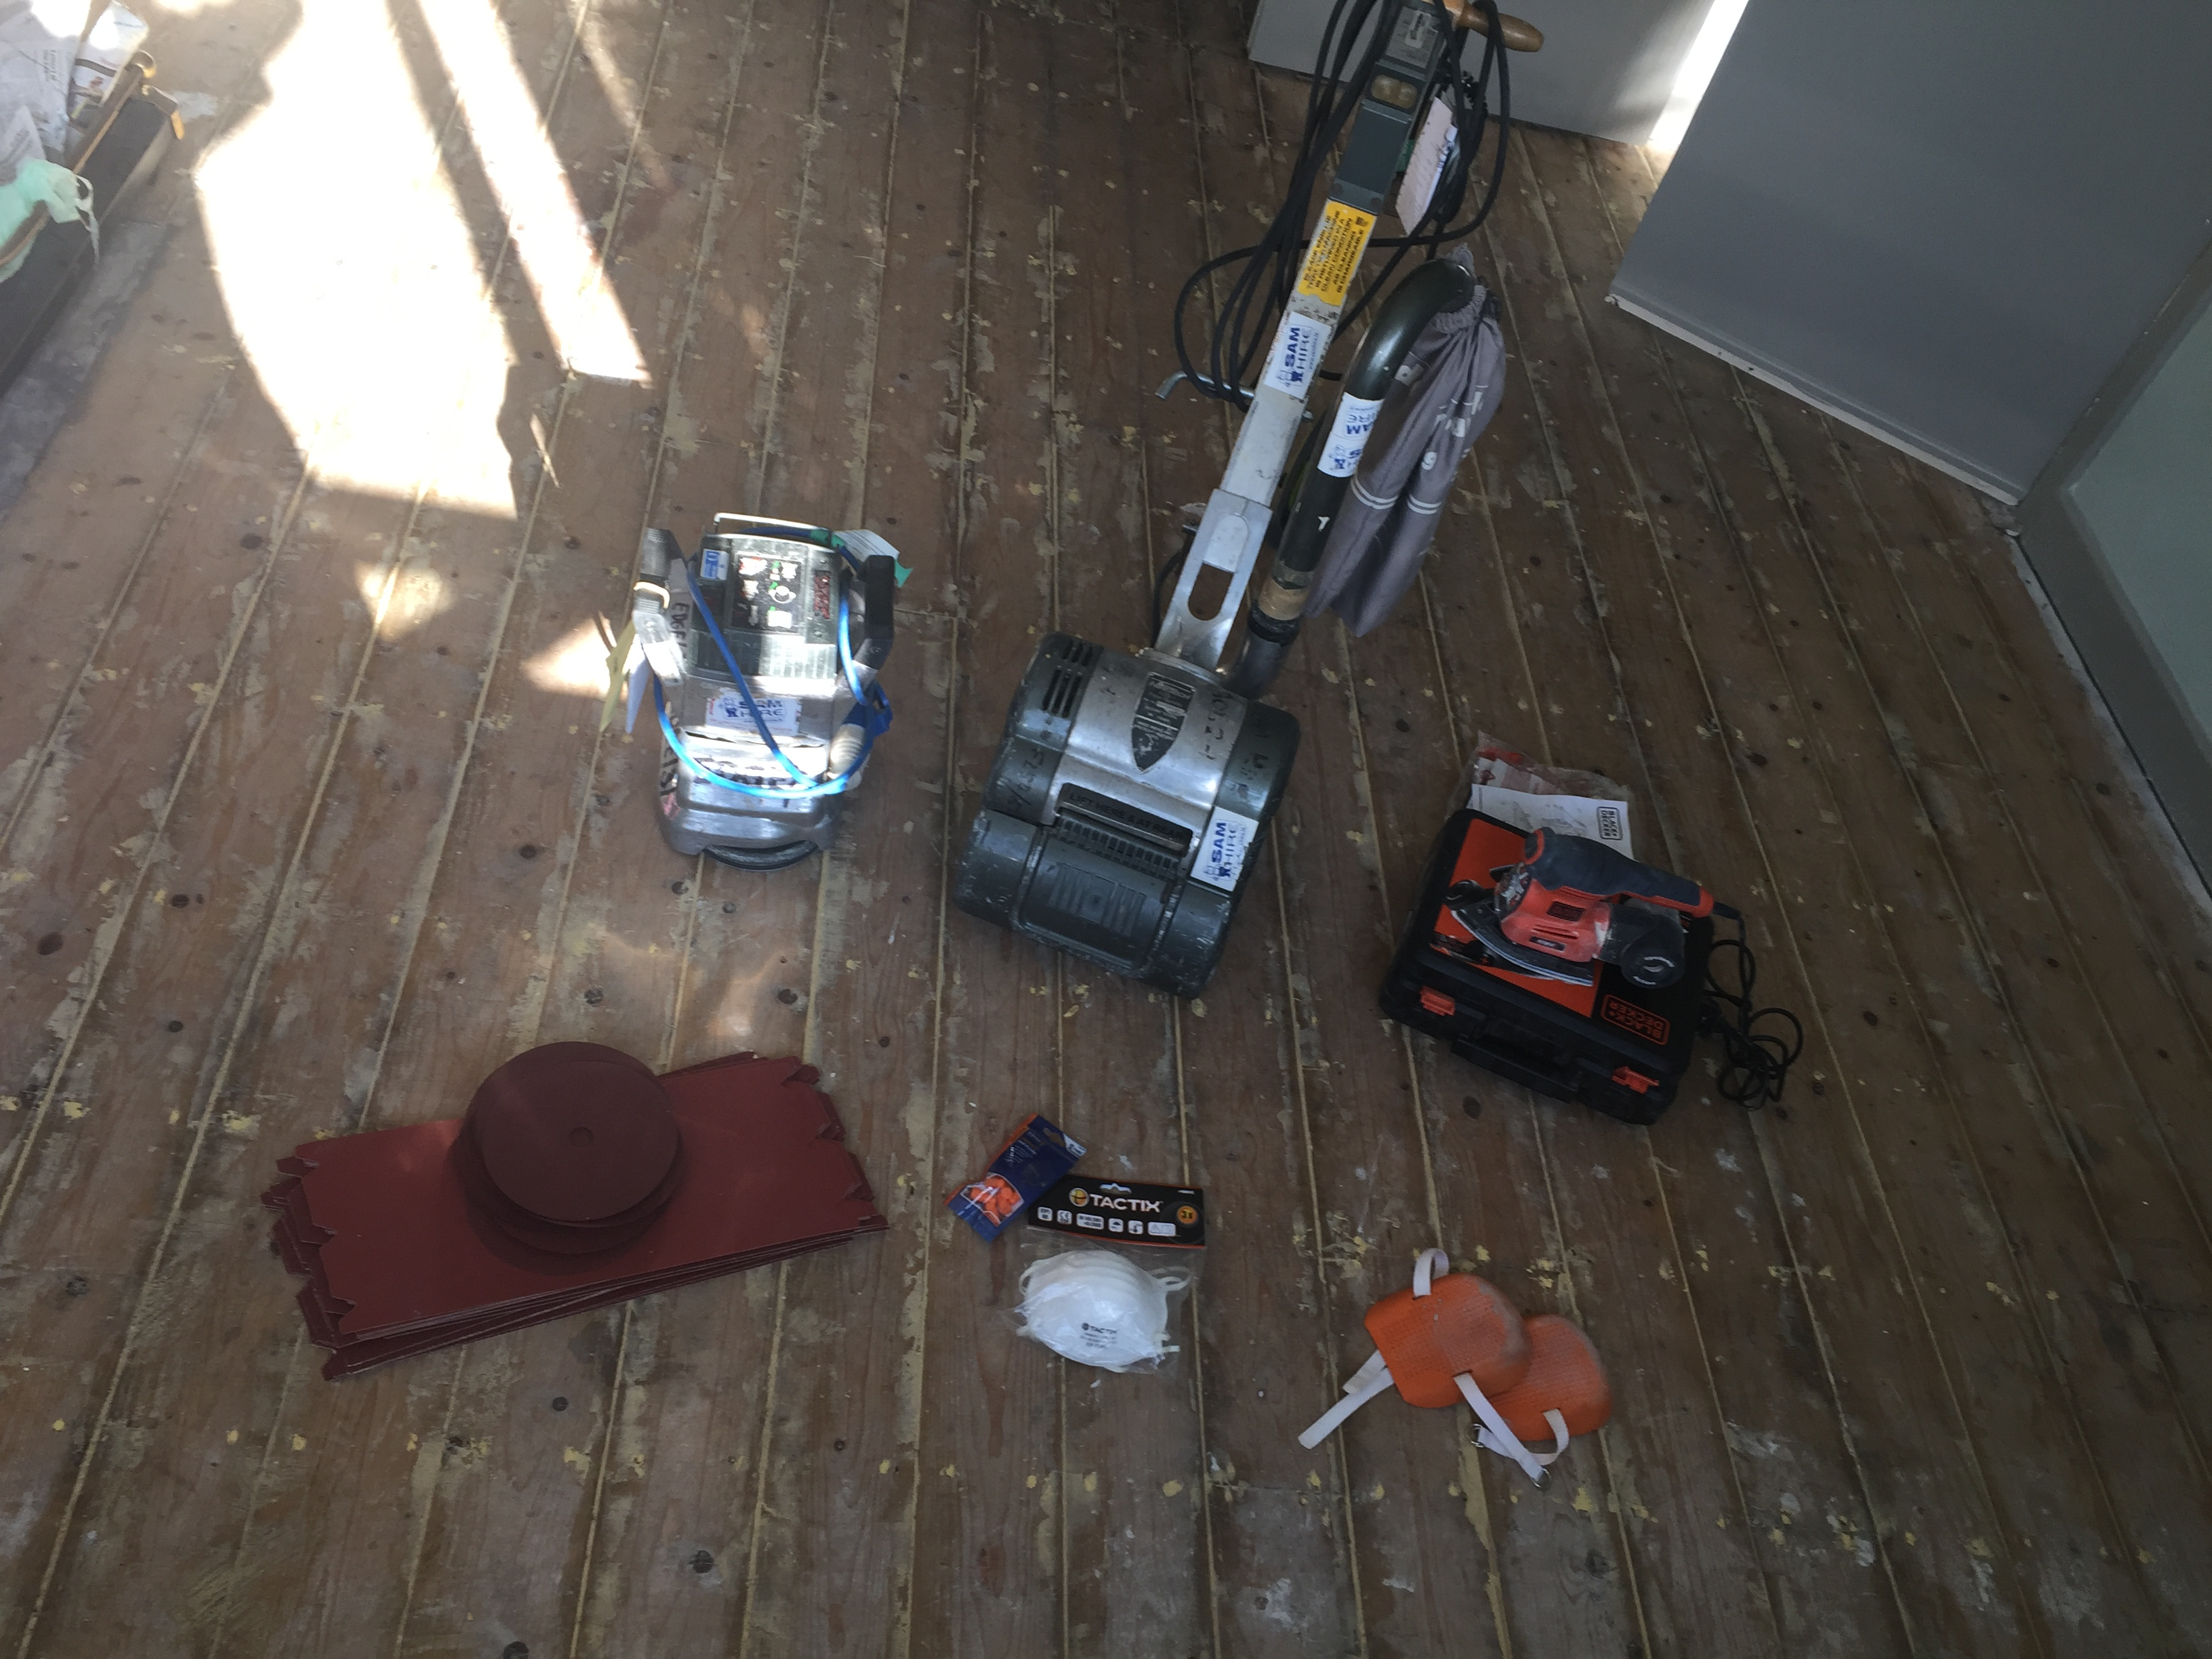 The equipment needed - a drum sander, edging sander, corner sander, sandpaper, dust mask, ear plugs and knee pads